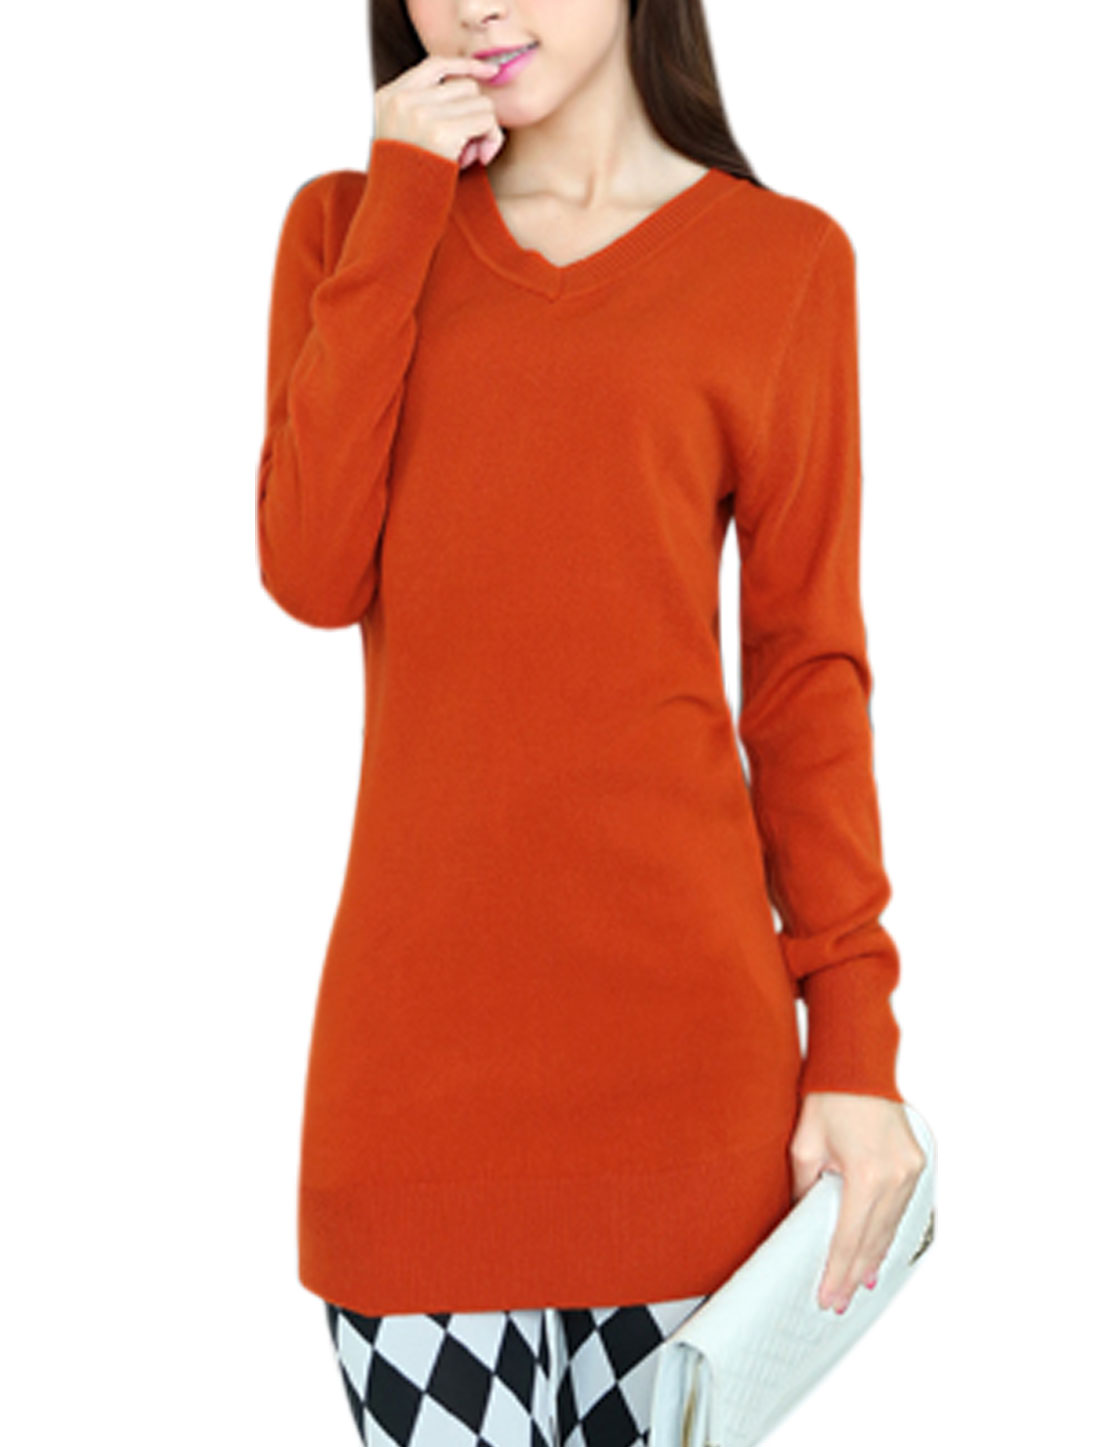 Ladies Pullover Form-fitting Casual Orange Tunic Knit Shirt XS